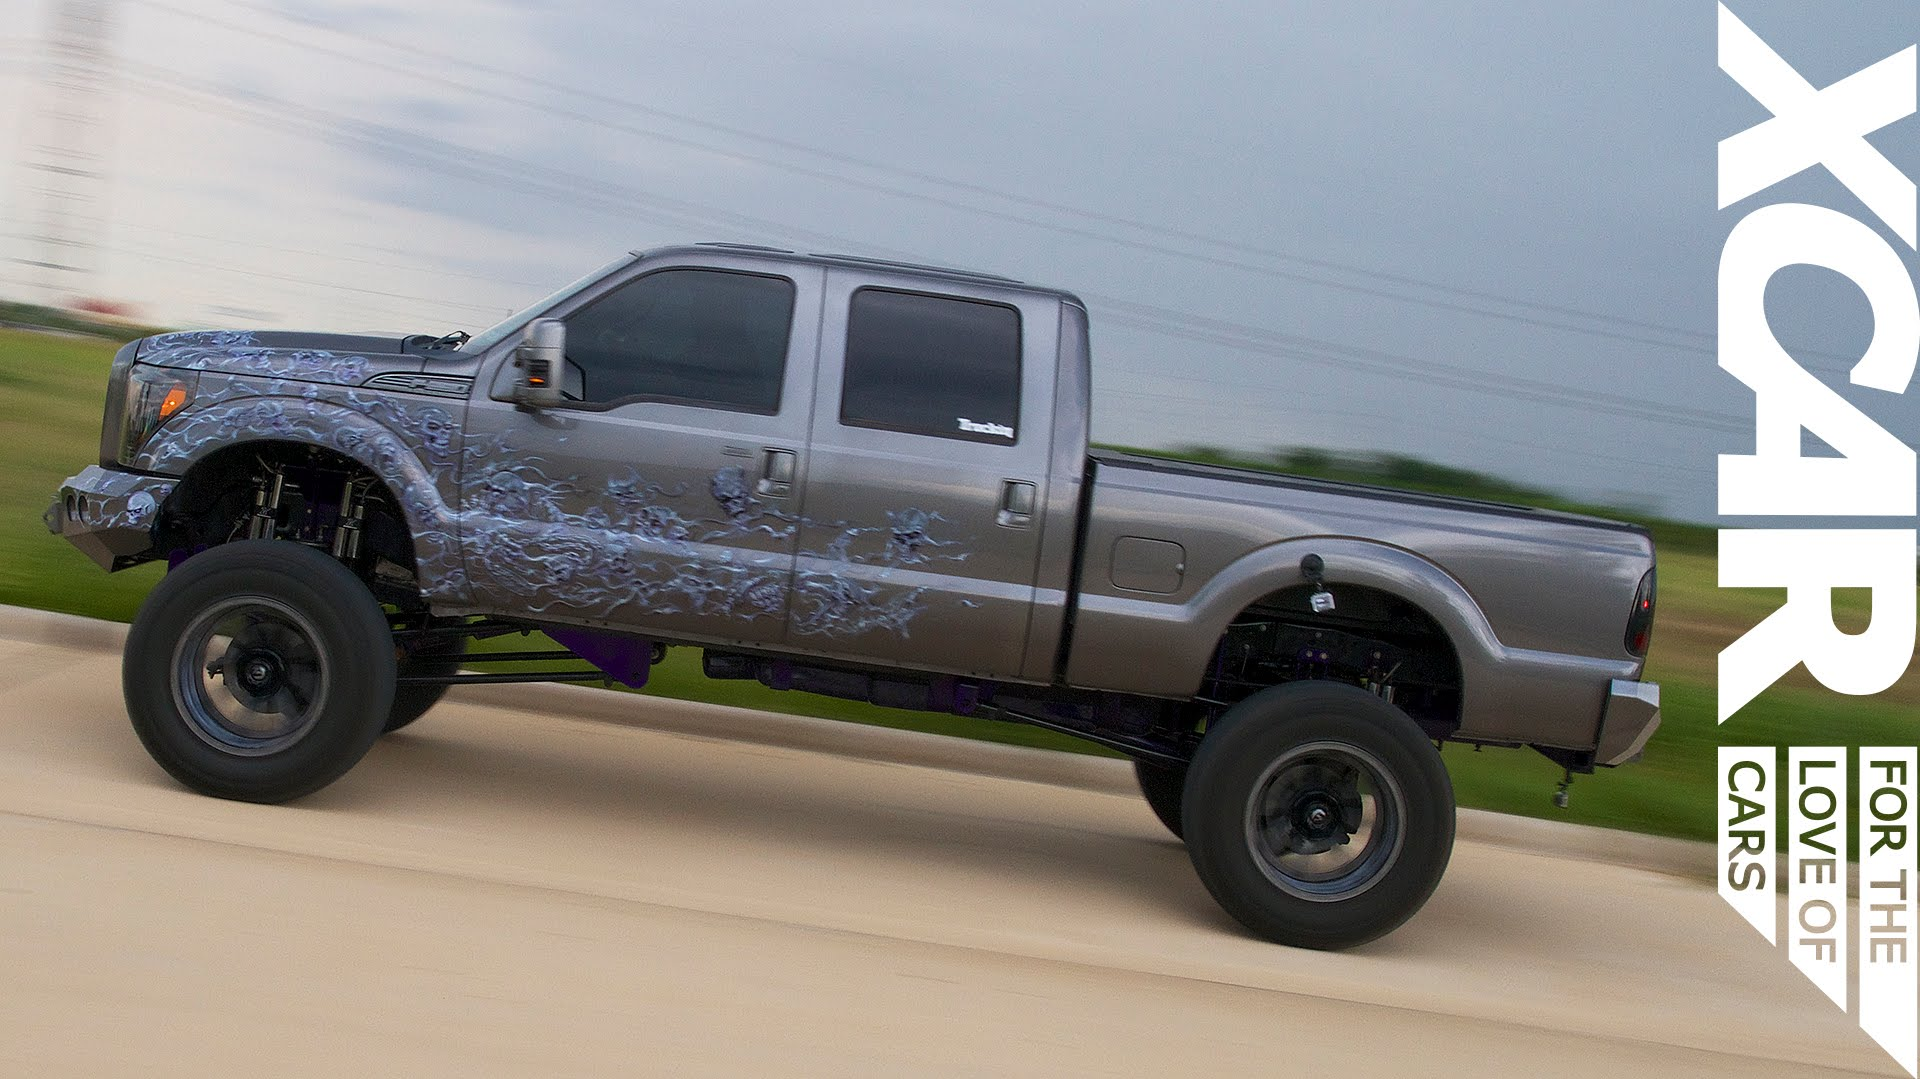 wanted to customize your truck let these guys do it for you